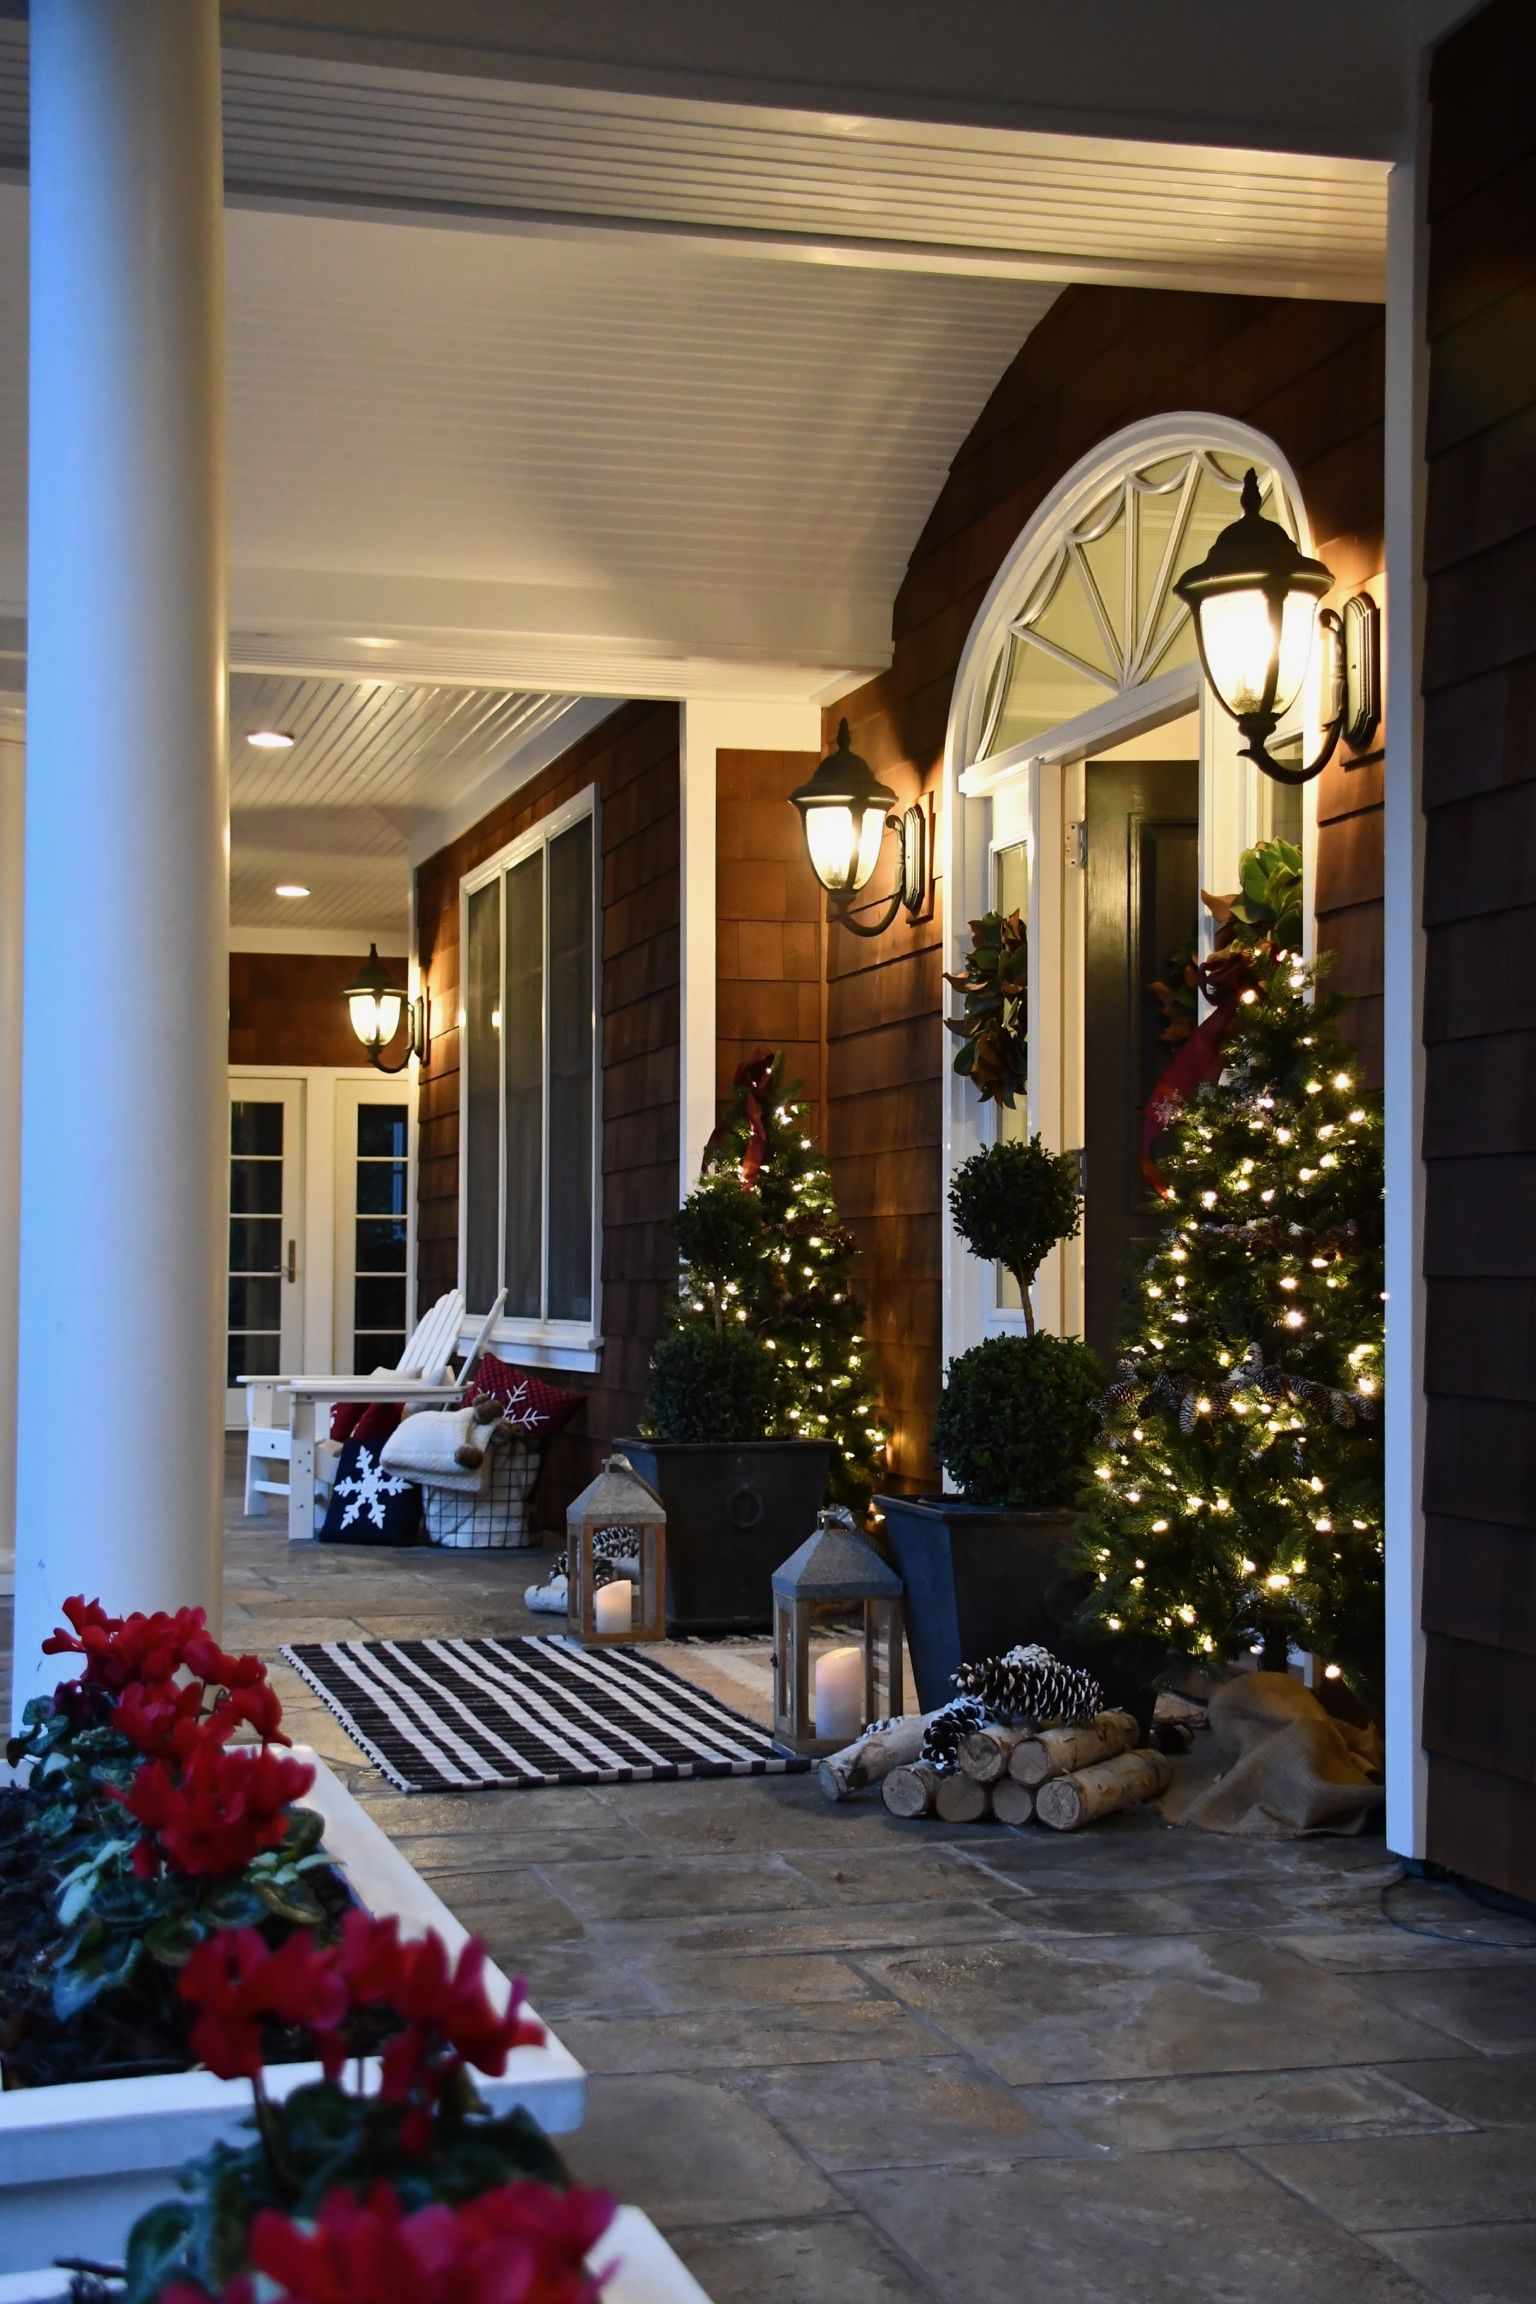 How To With Lowe S The Most Incredible Christmas Front Porch Simply Organized Front Porch Christmas Decor Christmas Decorations For The Home Front Porch Furniture